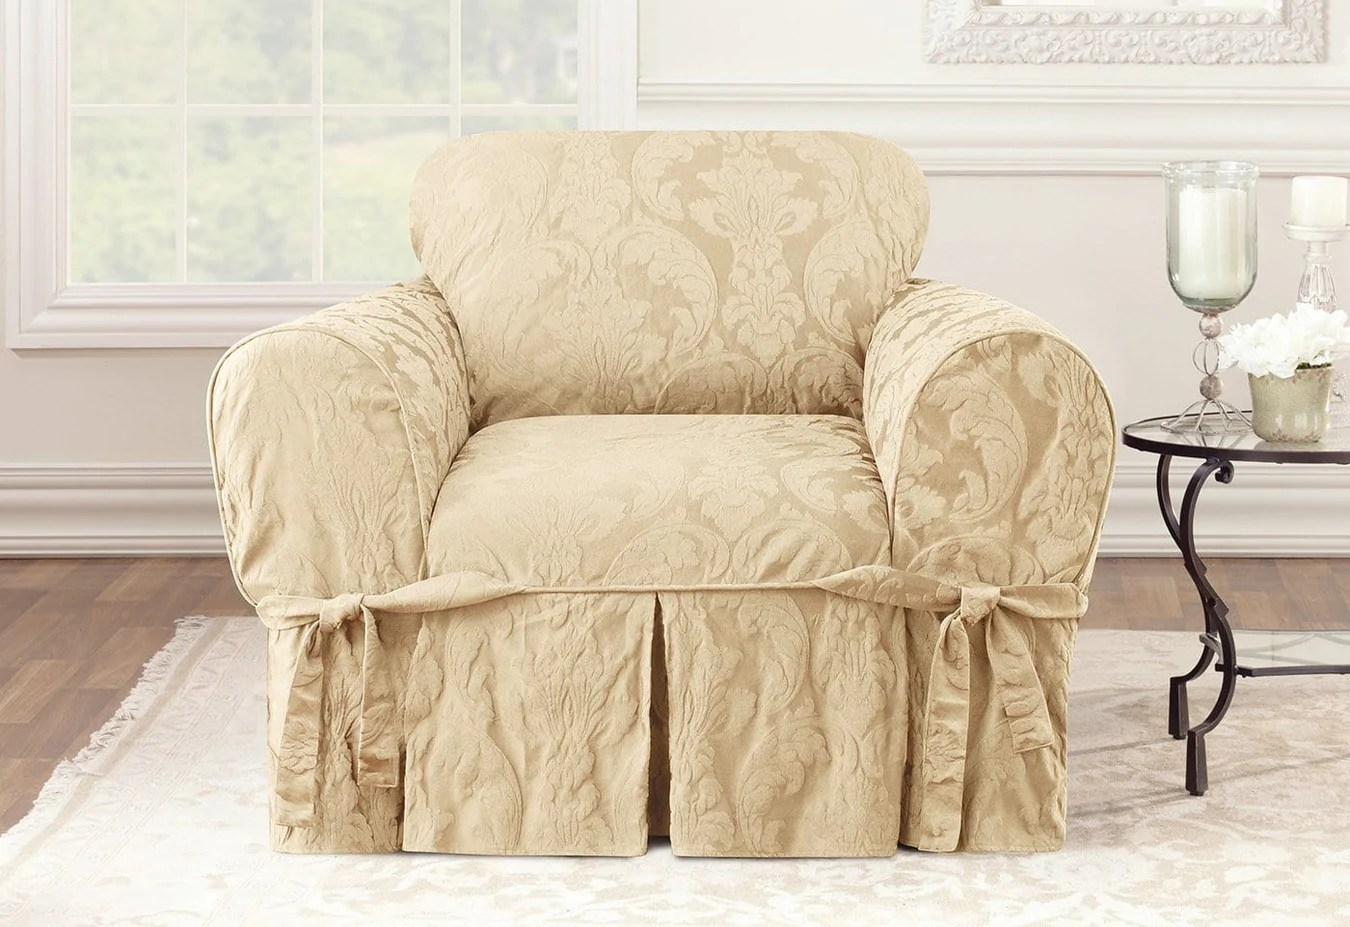 Damask Chair Matelasse Damask One Piece Chair Slipcover